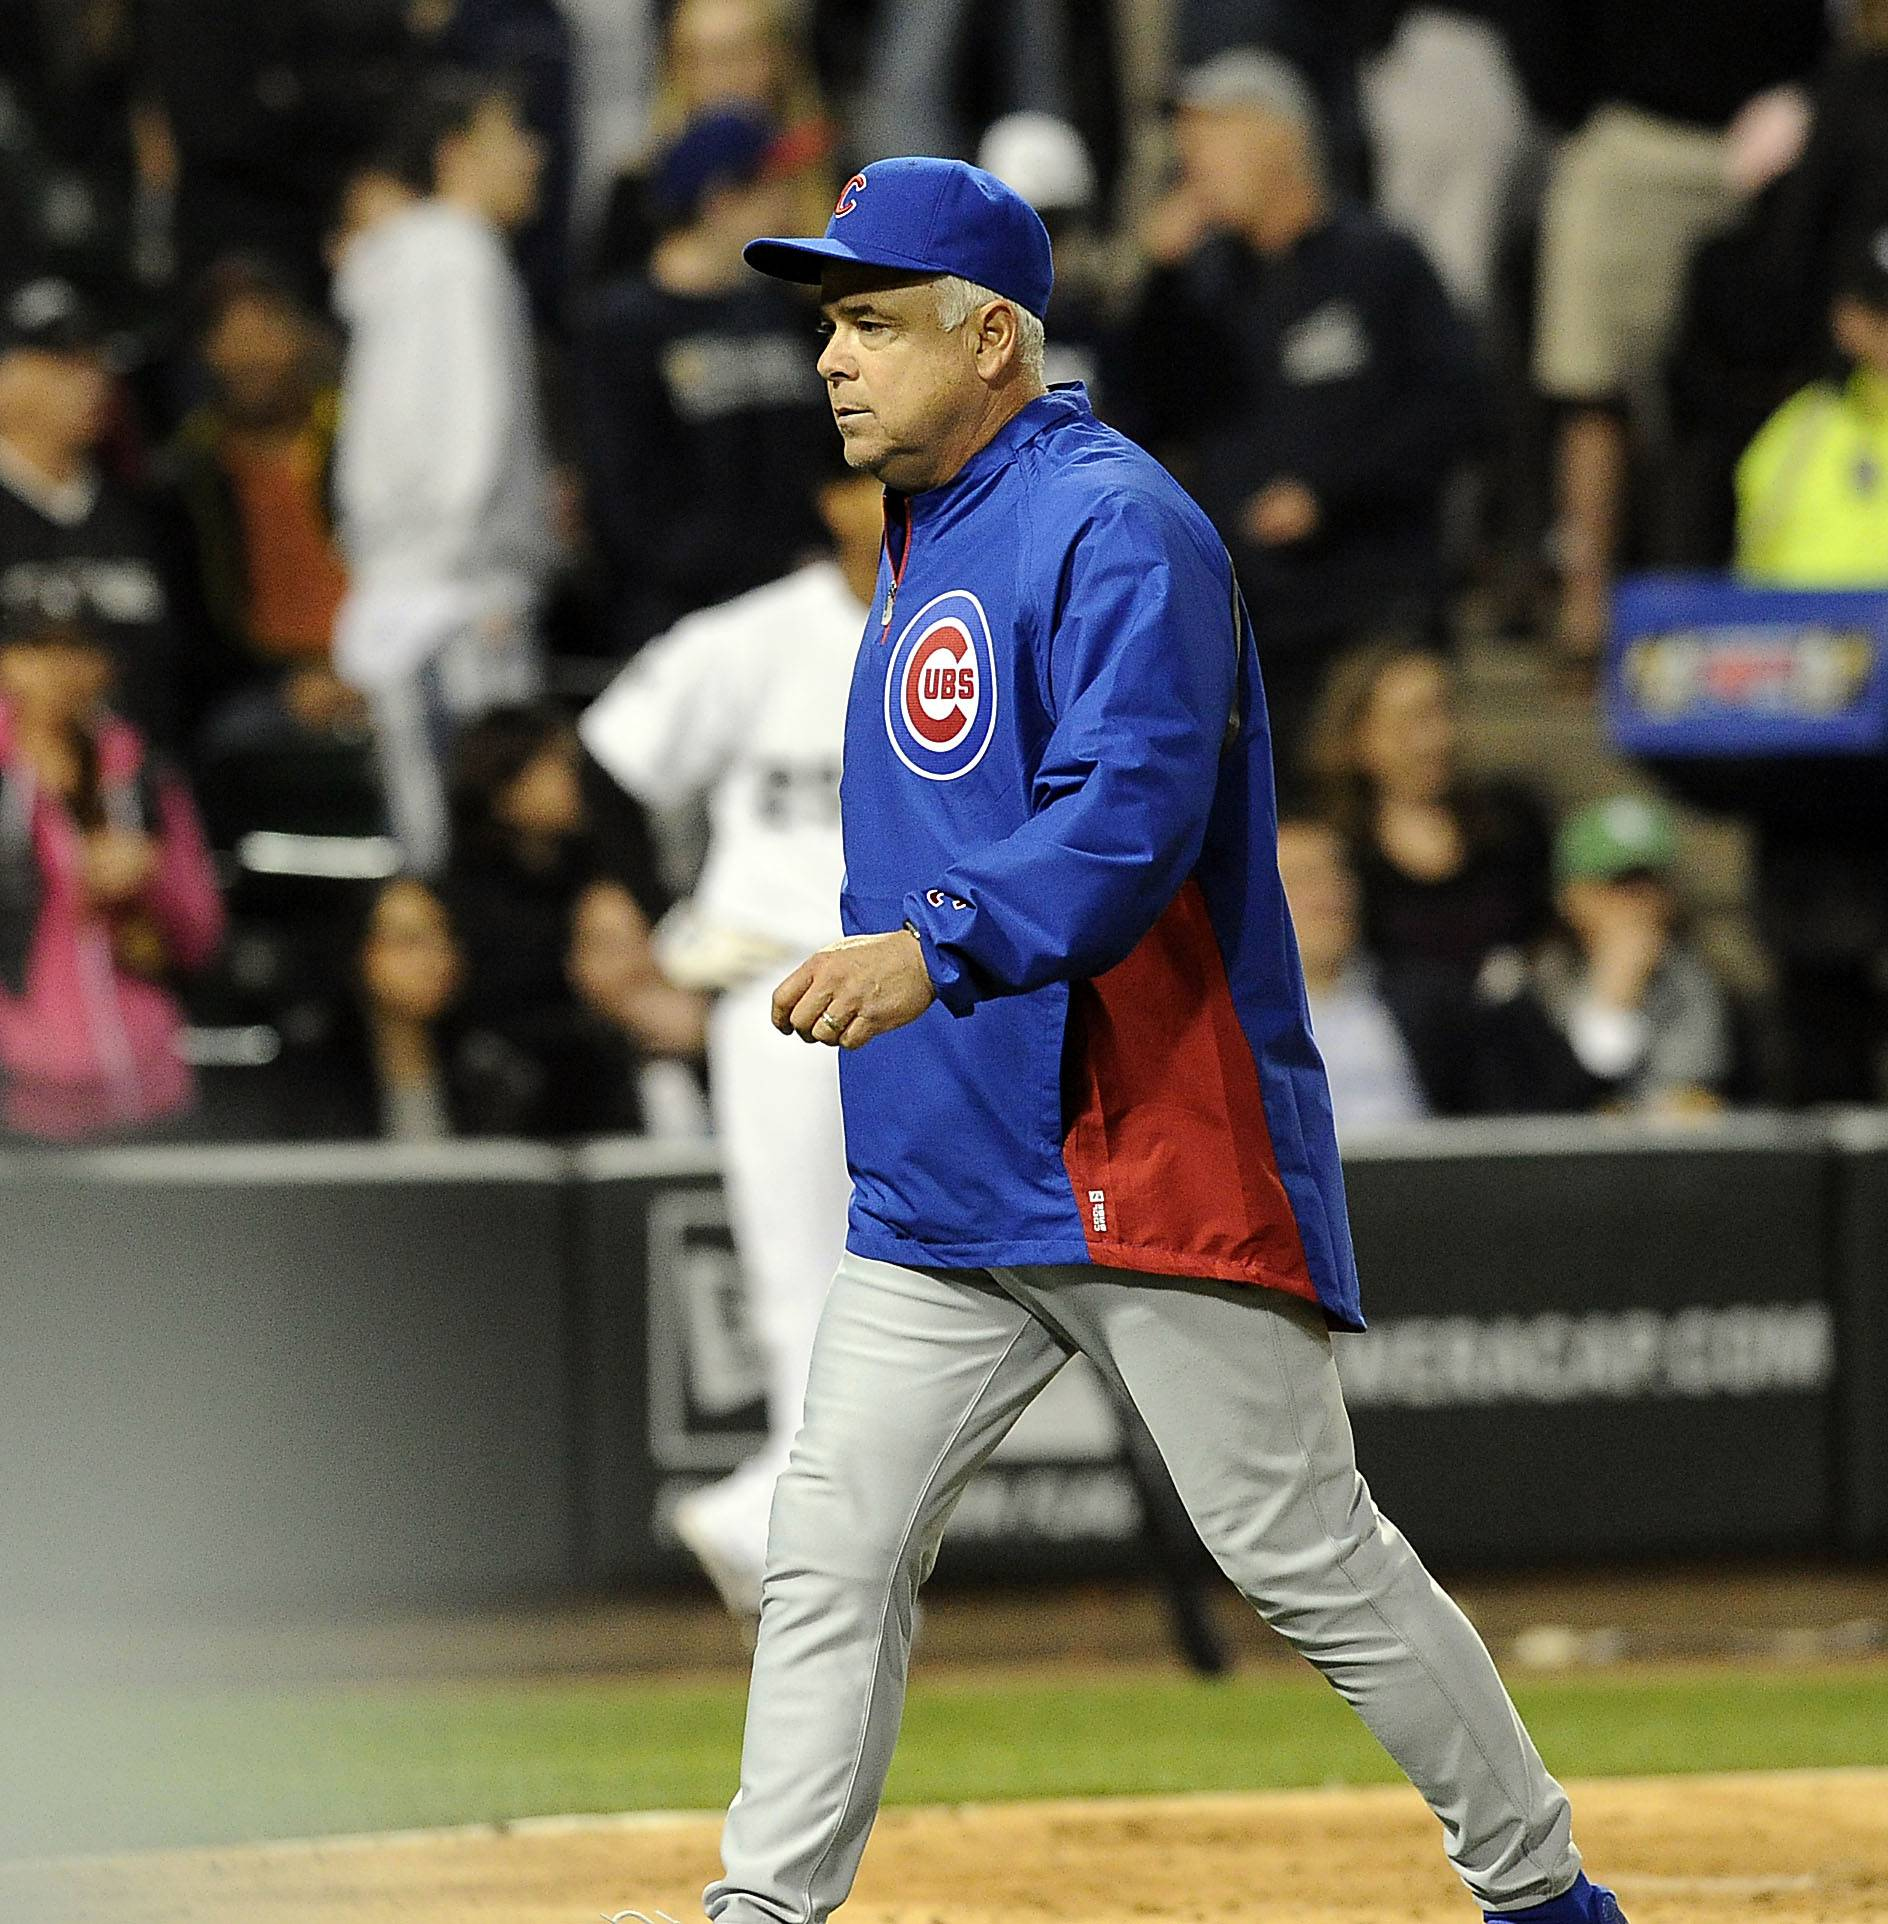 Cubs manager Rick Renteria is tossed from the game Wednesday by home plate umpire Tom Woodring.